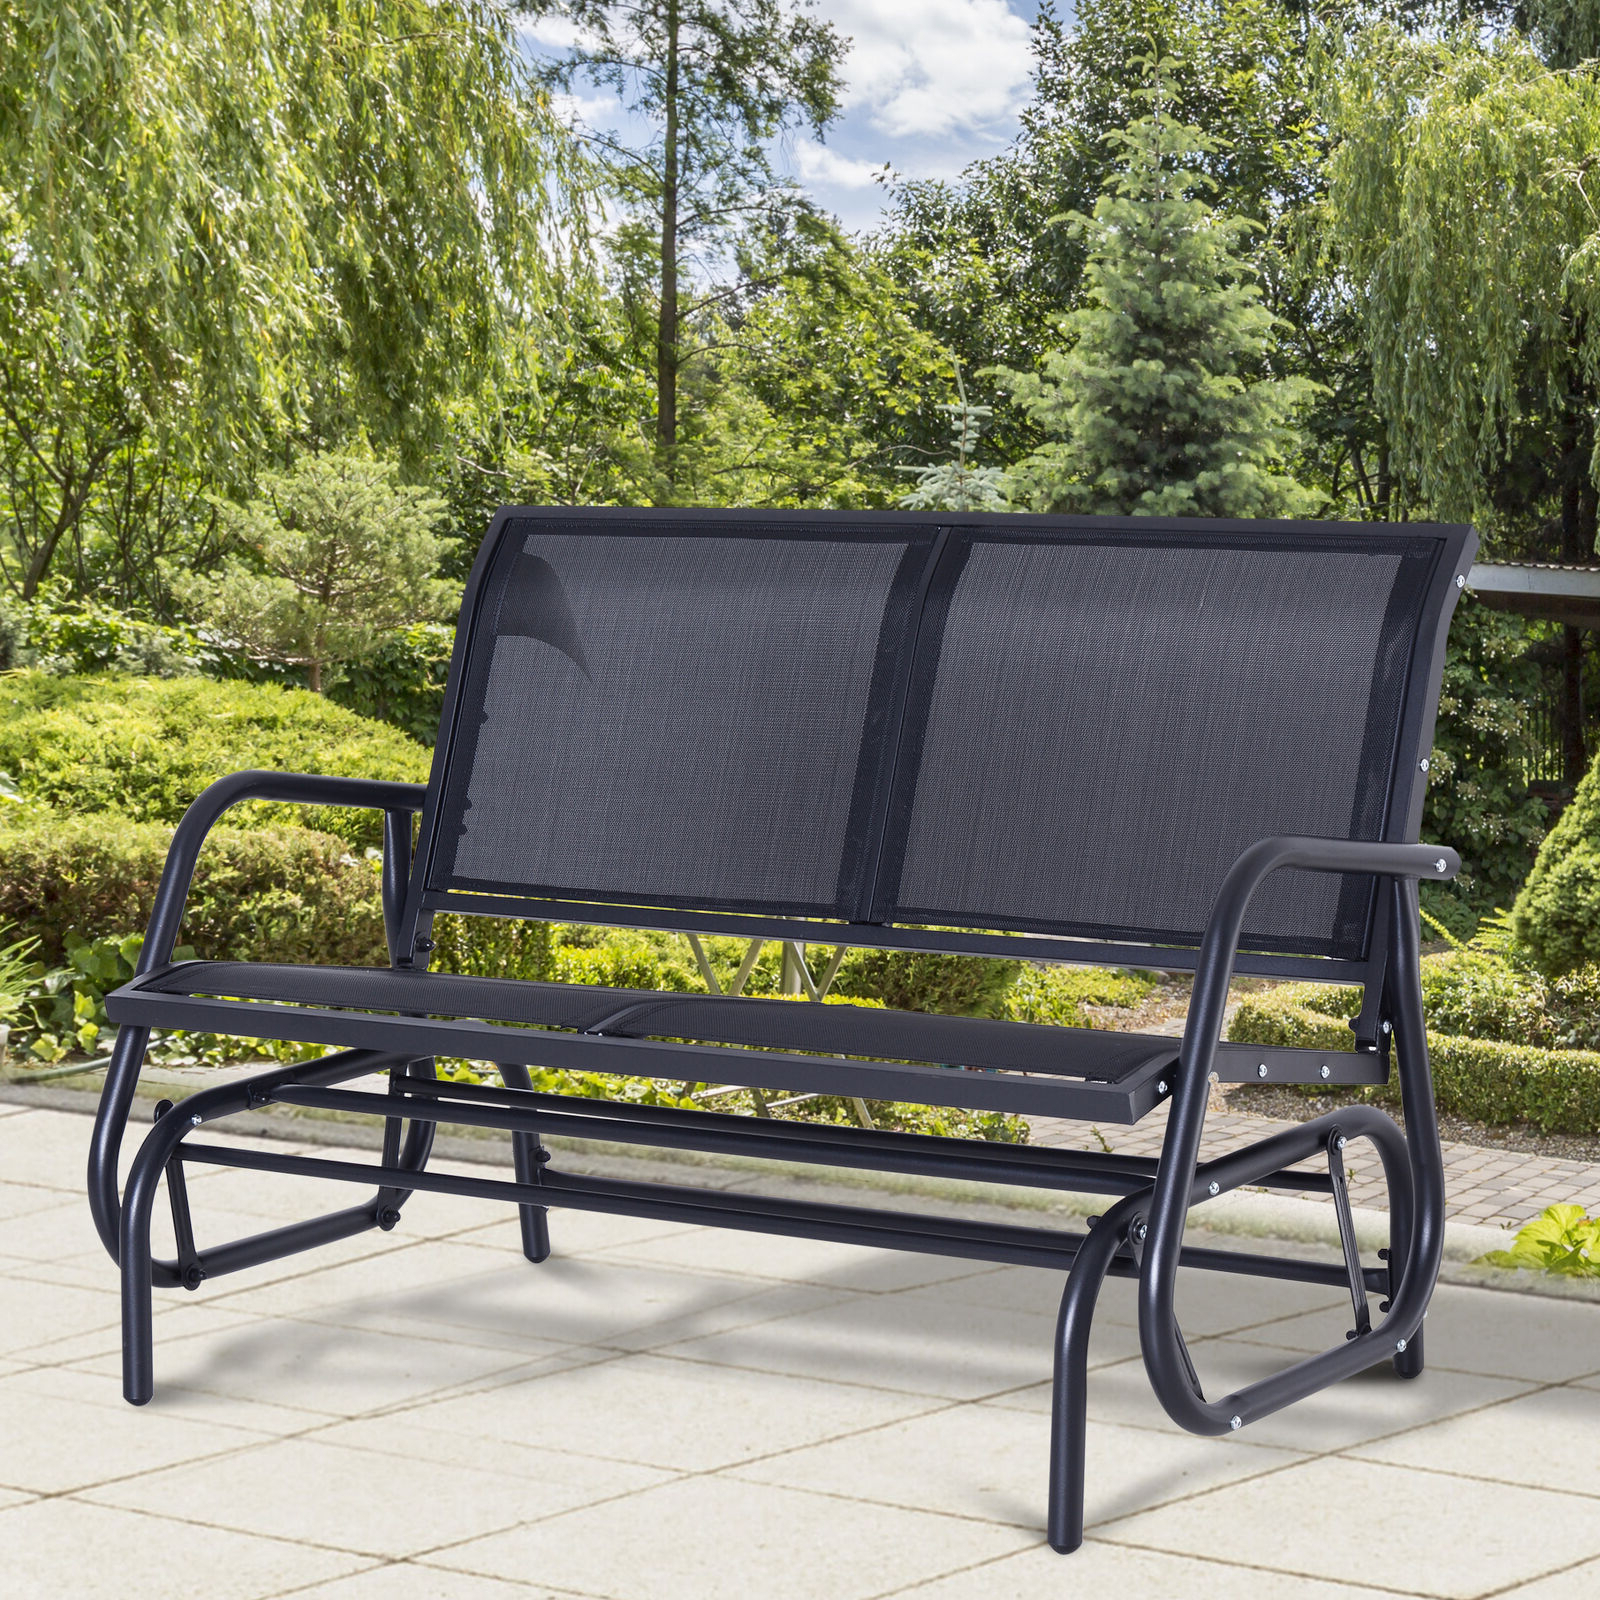 1 Person Antique Black Steel Outdoor Gliders Within Fashionable Outsunny Patio Double 2 Person Glider Bench Rocker Porch Love Seat Swing  Chair (View 6 of 25)